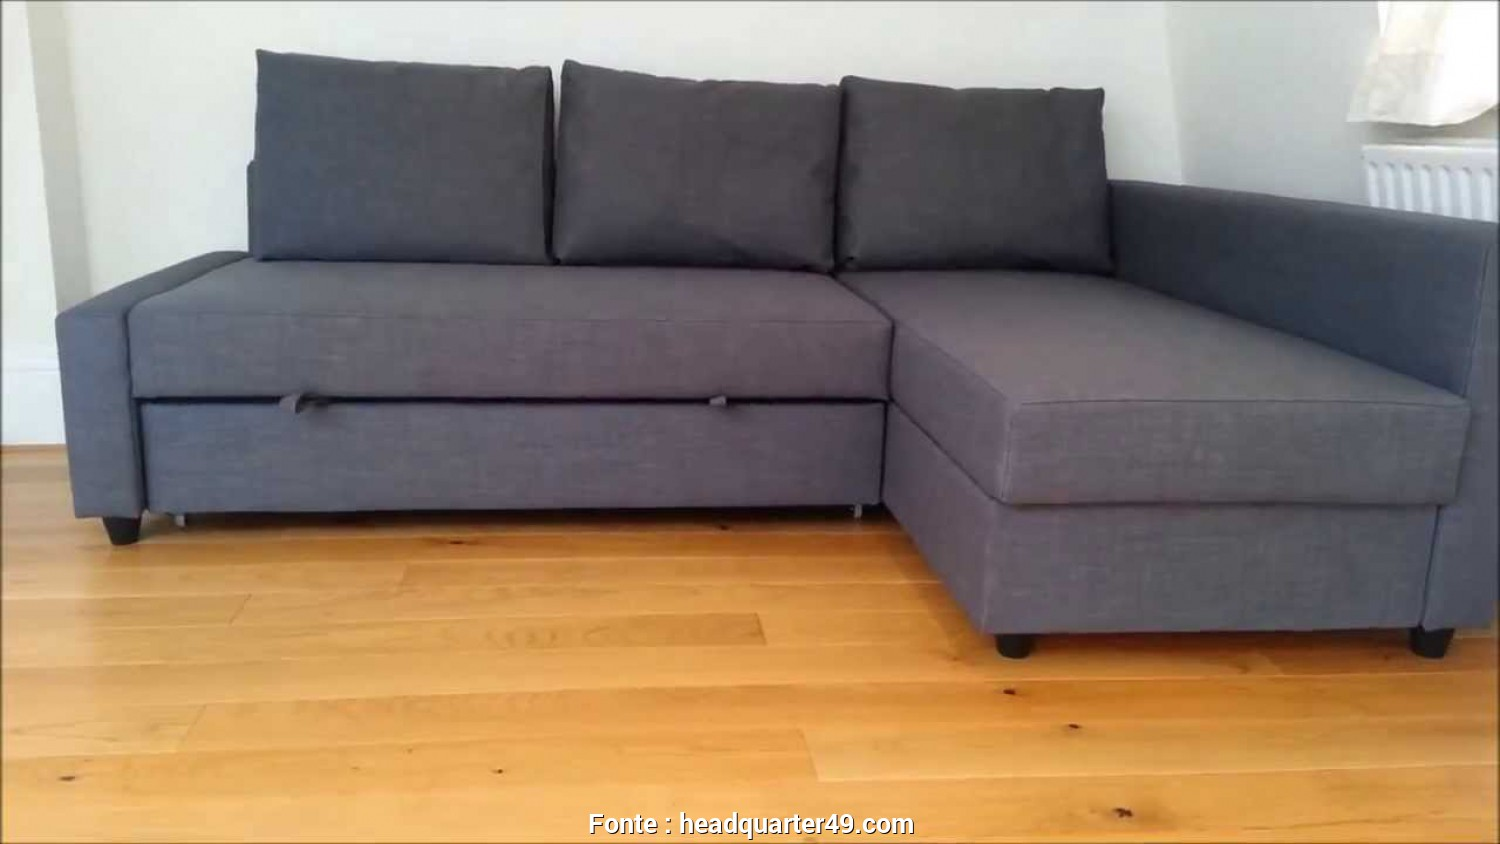 Divano Ikea Friheten Copridivano, Buono Furniture: Inspiring Sofa Storage Design Ideas With Friheten Sofa